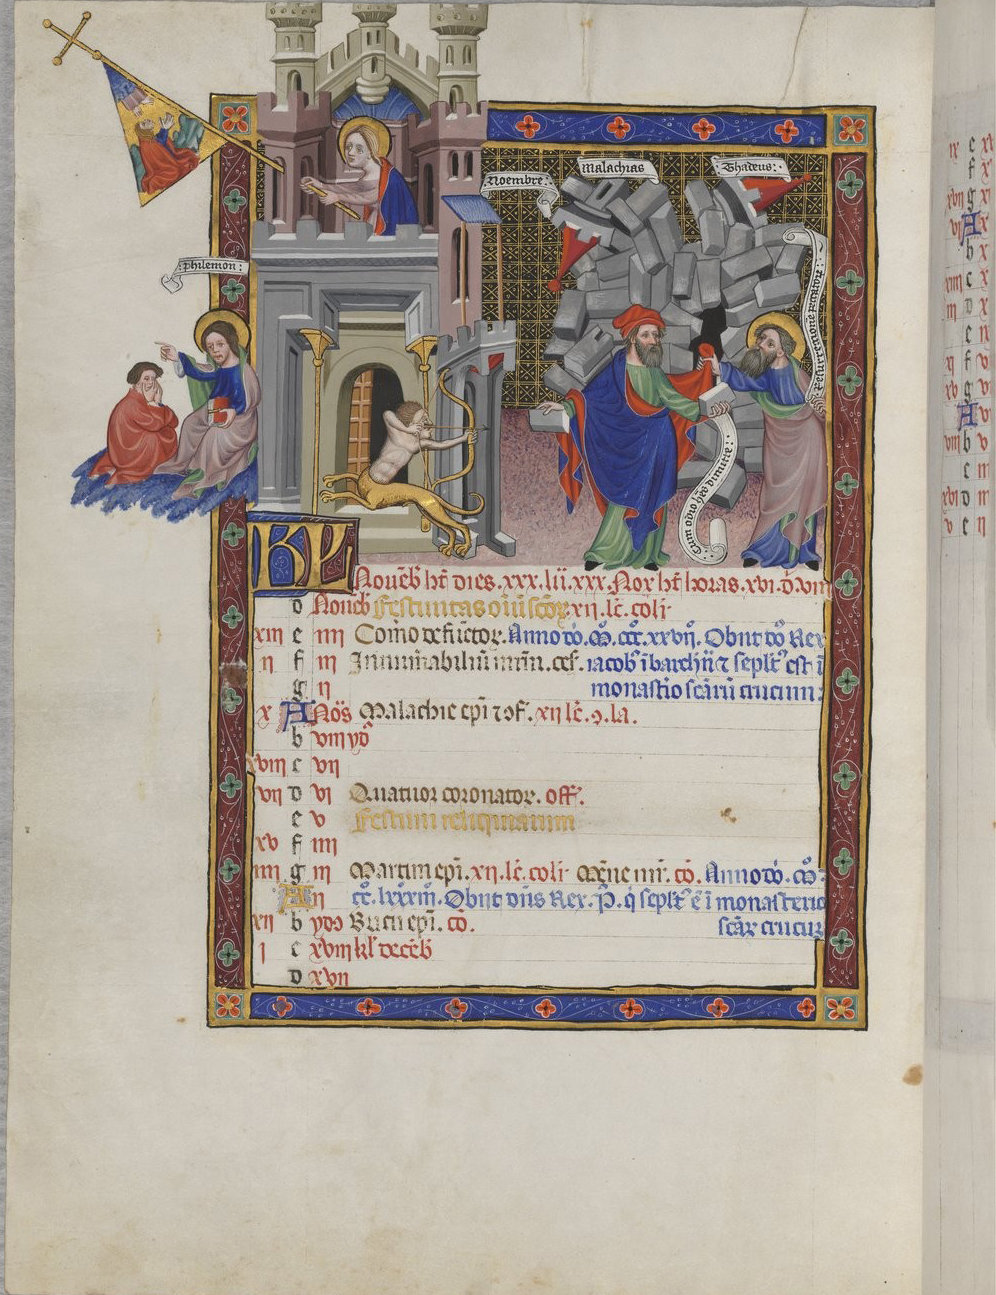 The Breviary of Martin of Aragon f26, Catalonia, between 1398 and 1410 and around 1420-1430, French National Library, Manuscripts, Rothschild 2529 Parchment, 454 ff., 350 x 252 mm. , In Copyright